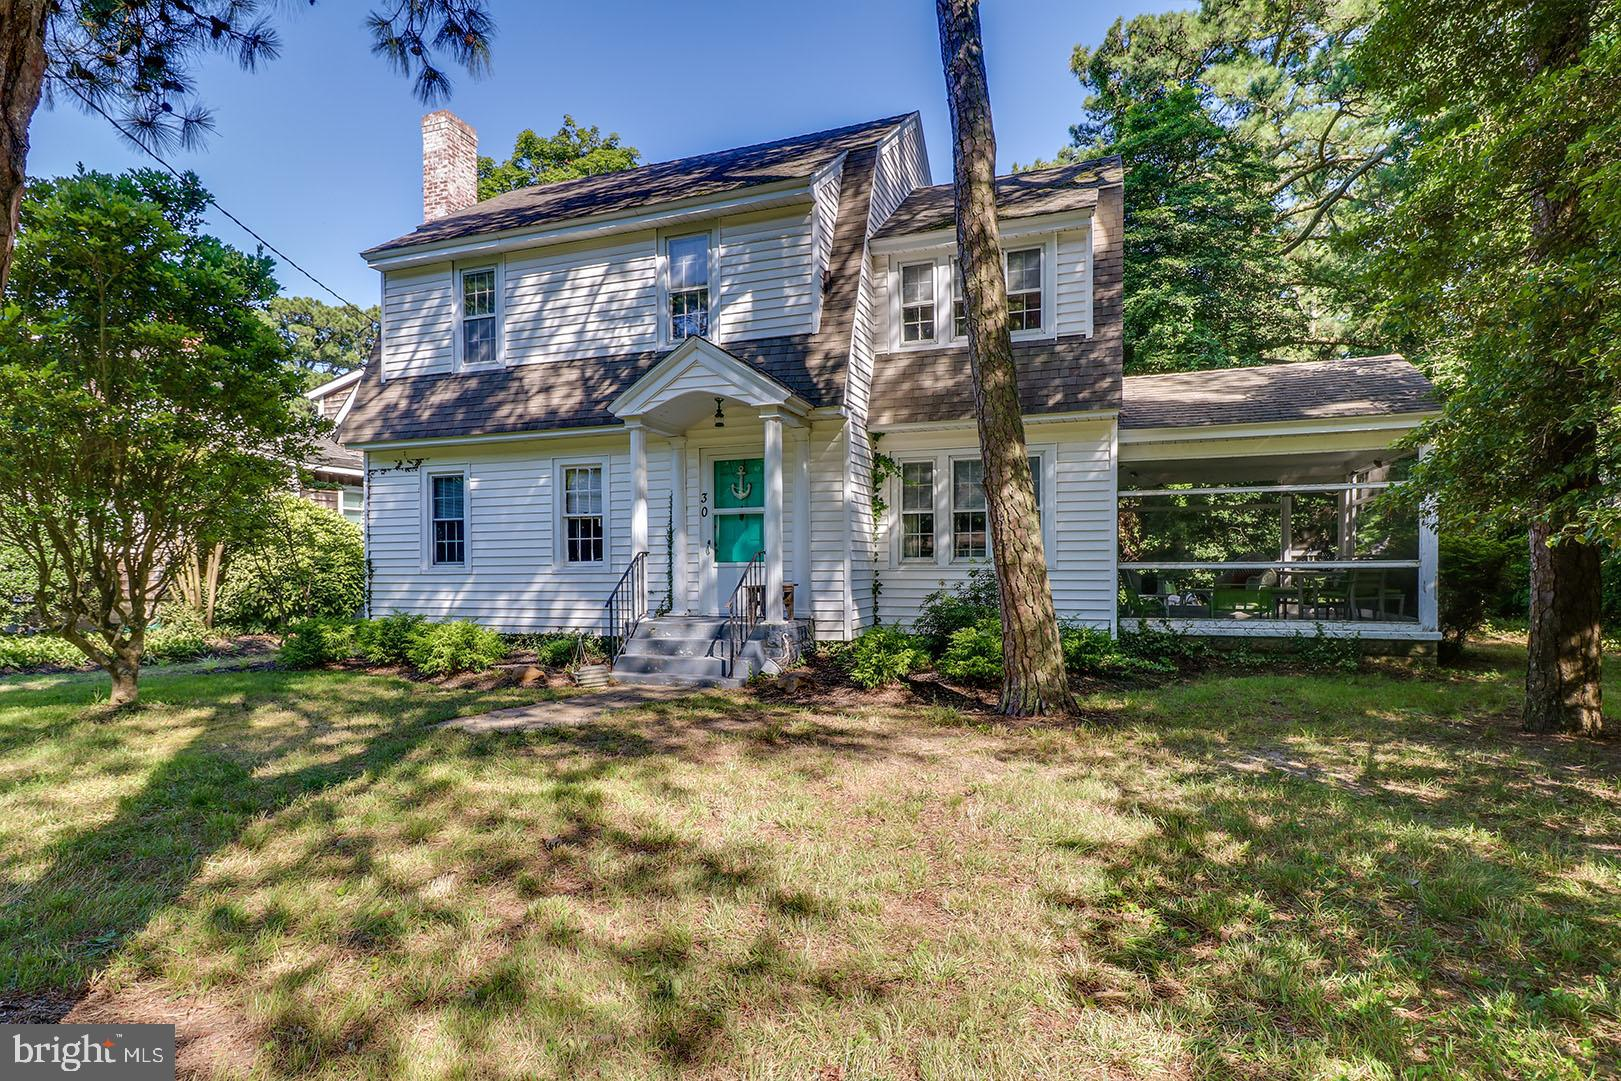 Rare opportunity to own a 75'x 100' parcel on one of the most sought-after locations in The Pines - Park Avenue.  Perfectly positioned in the ocean block and just a short distance from the beach. This location offers excellent proximity to the boardwalk, restaurants, and all of Rehoboth's amenities. This 1930's cottage is surprisingly spacious and offers great potential. Upon entry the home features a large family room complete with a wood burning fireplace and high ceilings for a home of this age.  Adjacent to the family room you will find a large flex space that is currently being used as a 5th bedroom, but appears to have been a study or den in the past.  As you walk to the rear of the home you will find an eat-in kitchen that connects to a large formal dining room.  A beautiful curved staircase decorated with an intricate railing guides you to the second floor where you will find 4 spacious bedrooms, a full bath and a walk-up attic. With a screened porch, beautiful mature trees and a detached garage, 30 Park Avenue offers many possibilities, but most important, a superb location!